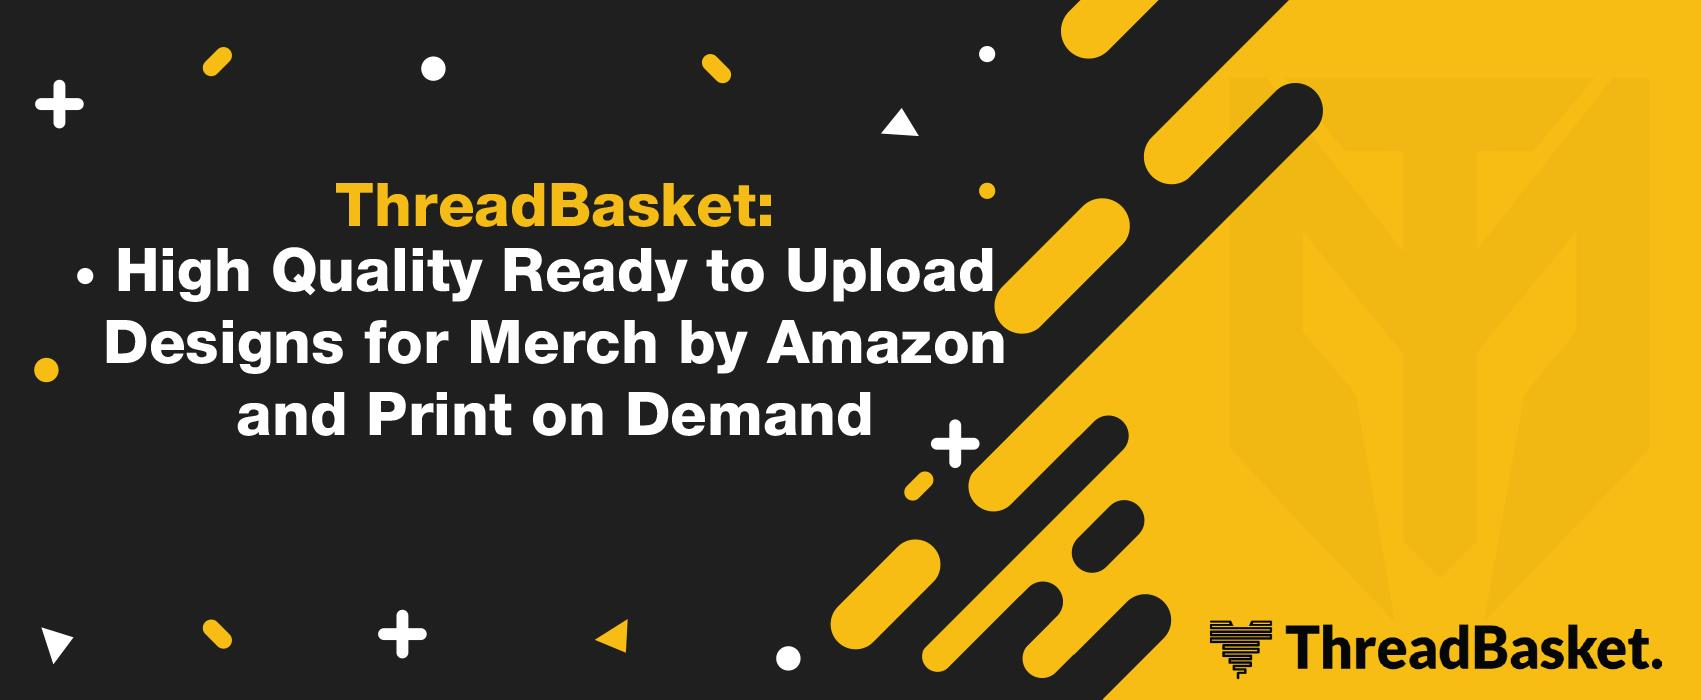 ThreadBasket: High Quality Ready to Upload Designs for Merch by Amazon & Print on Demand